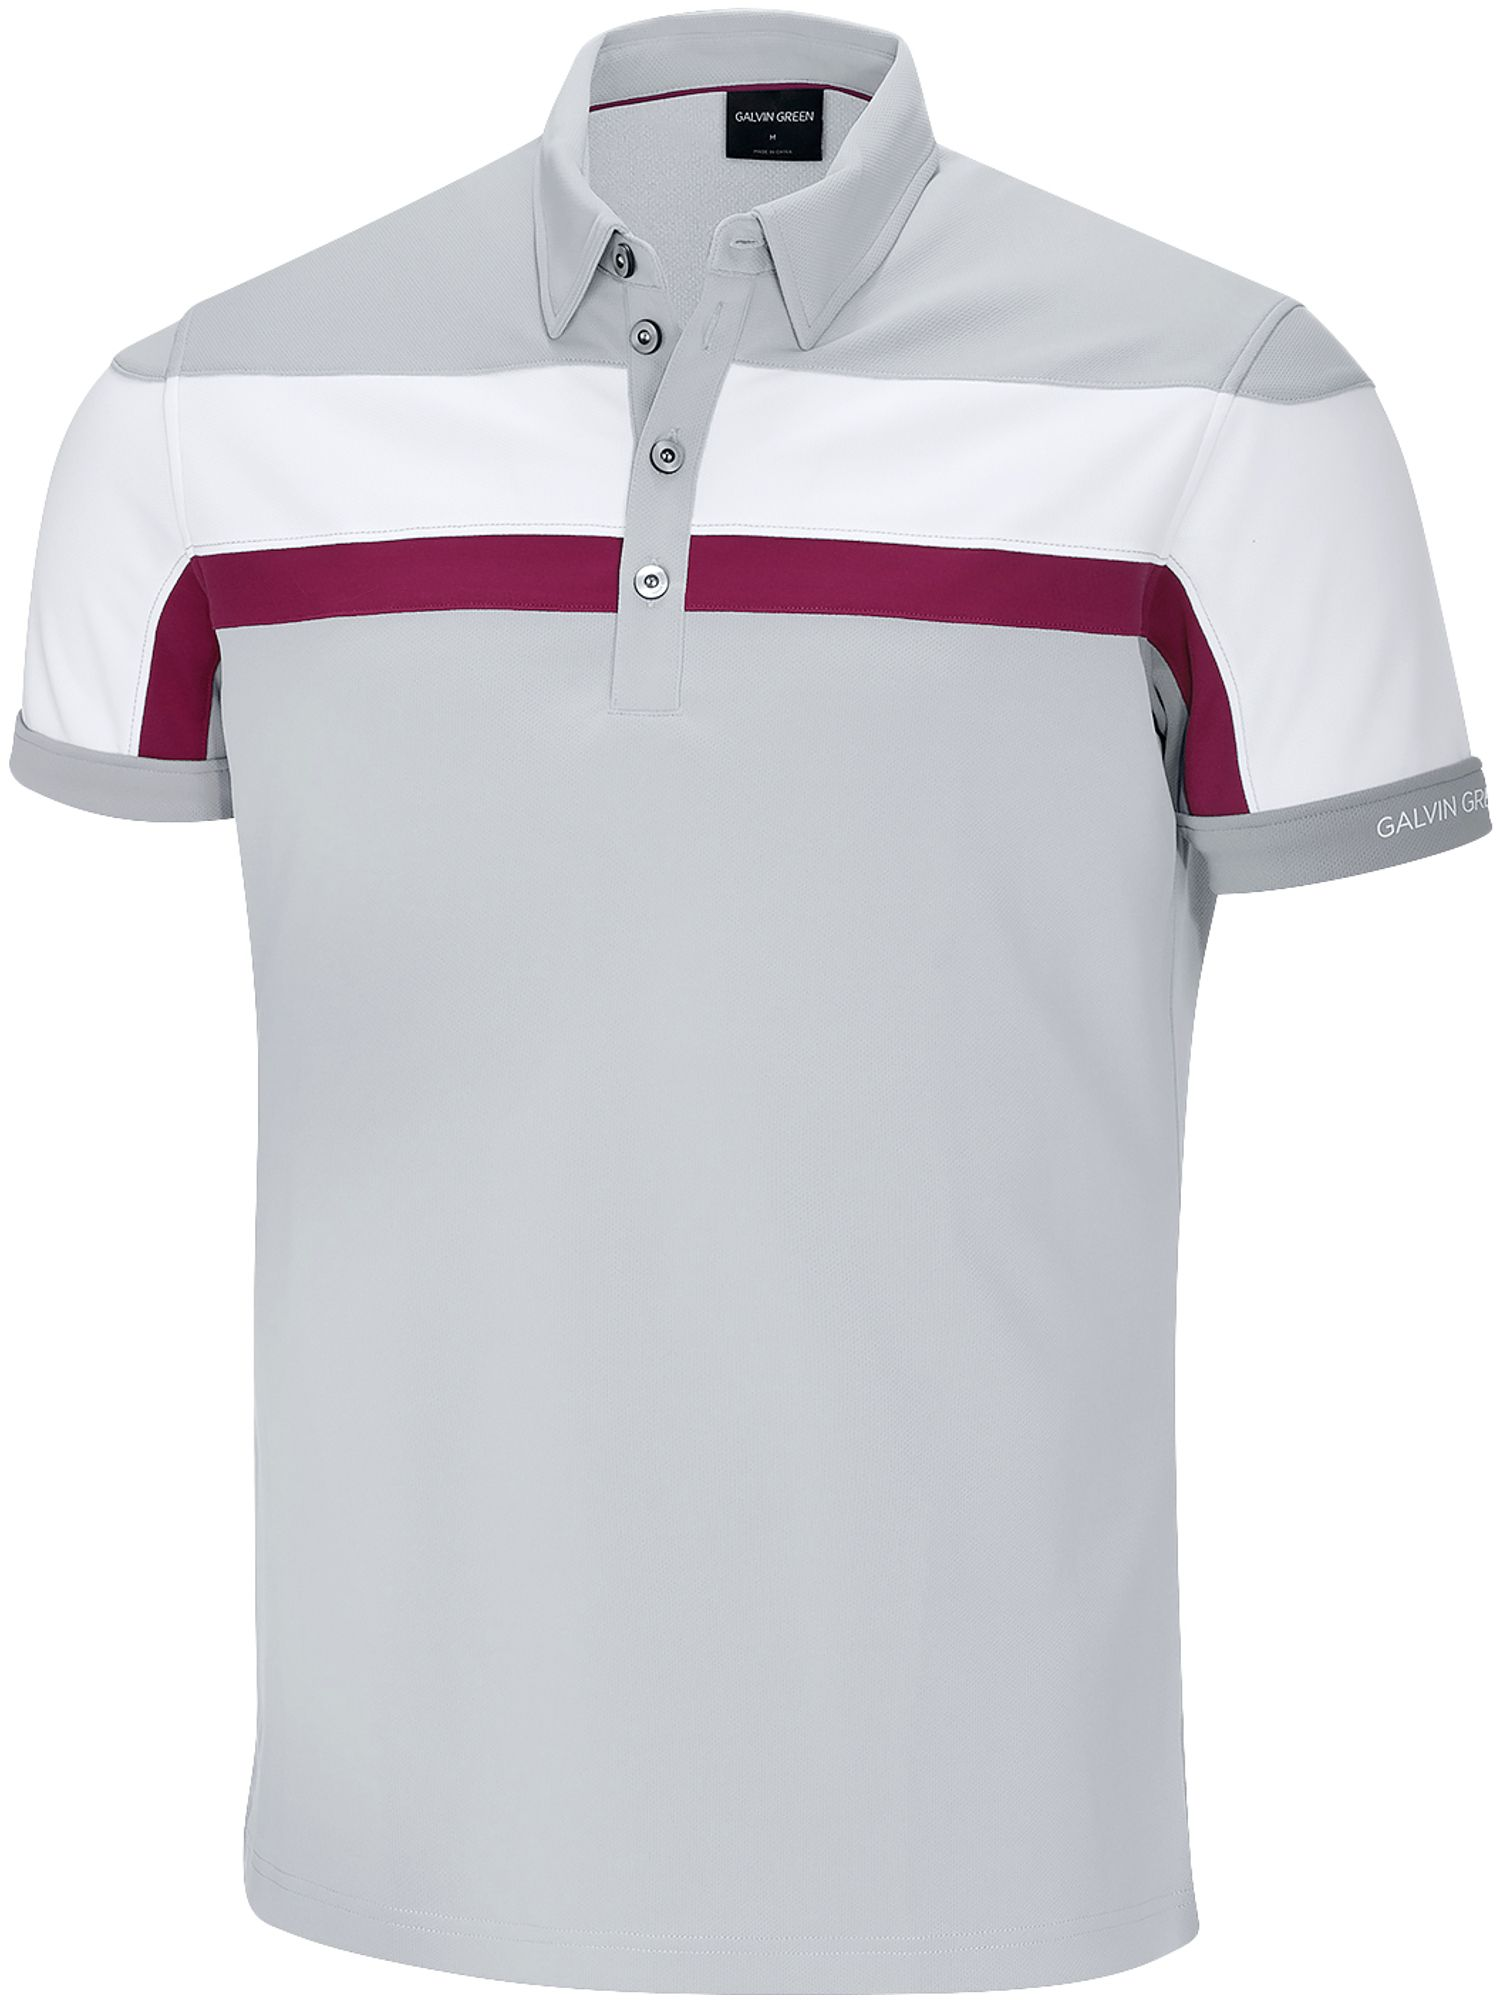 Men's Galvin Green Mitchell Ventil8 Polo, Steel